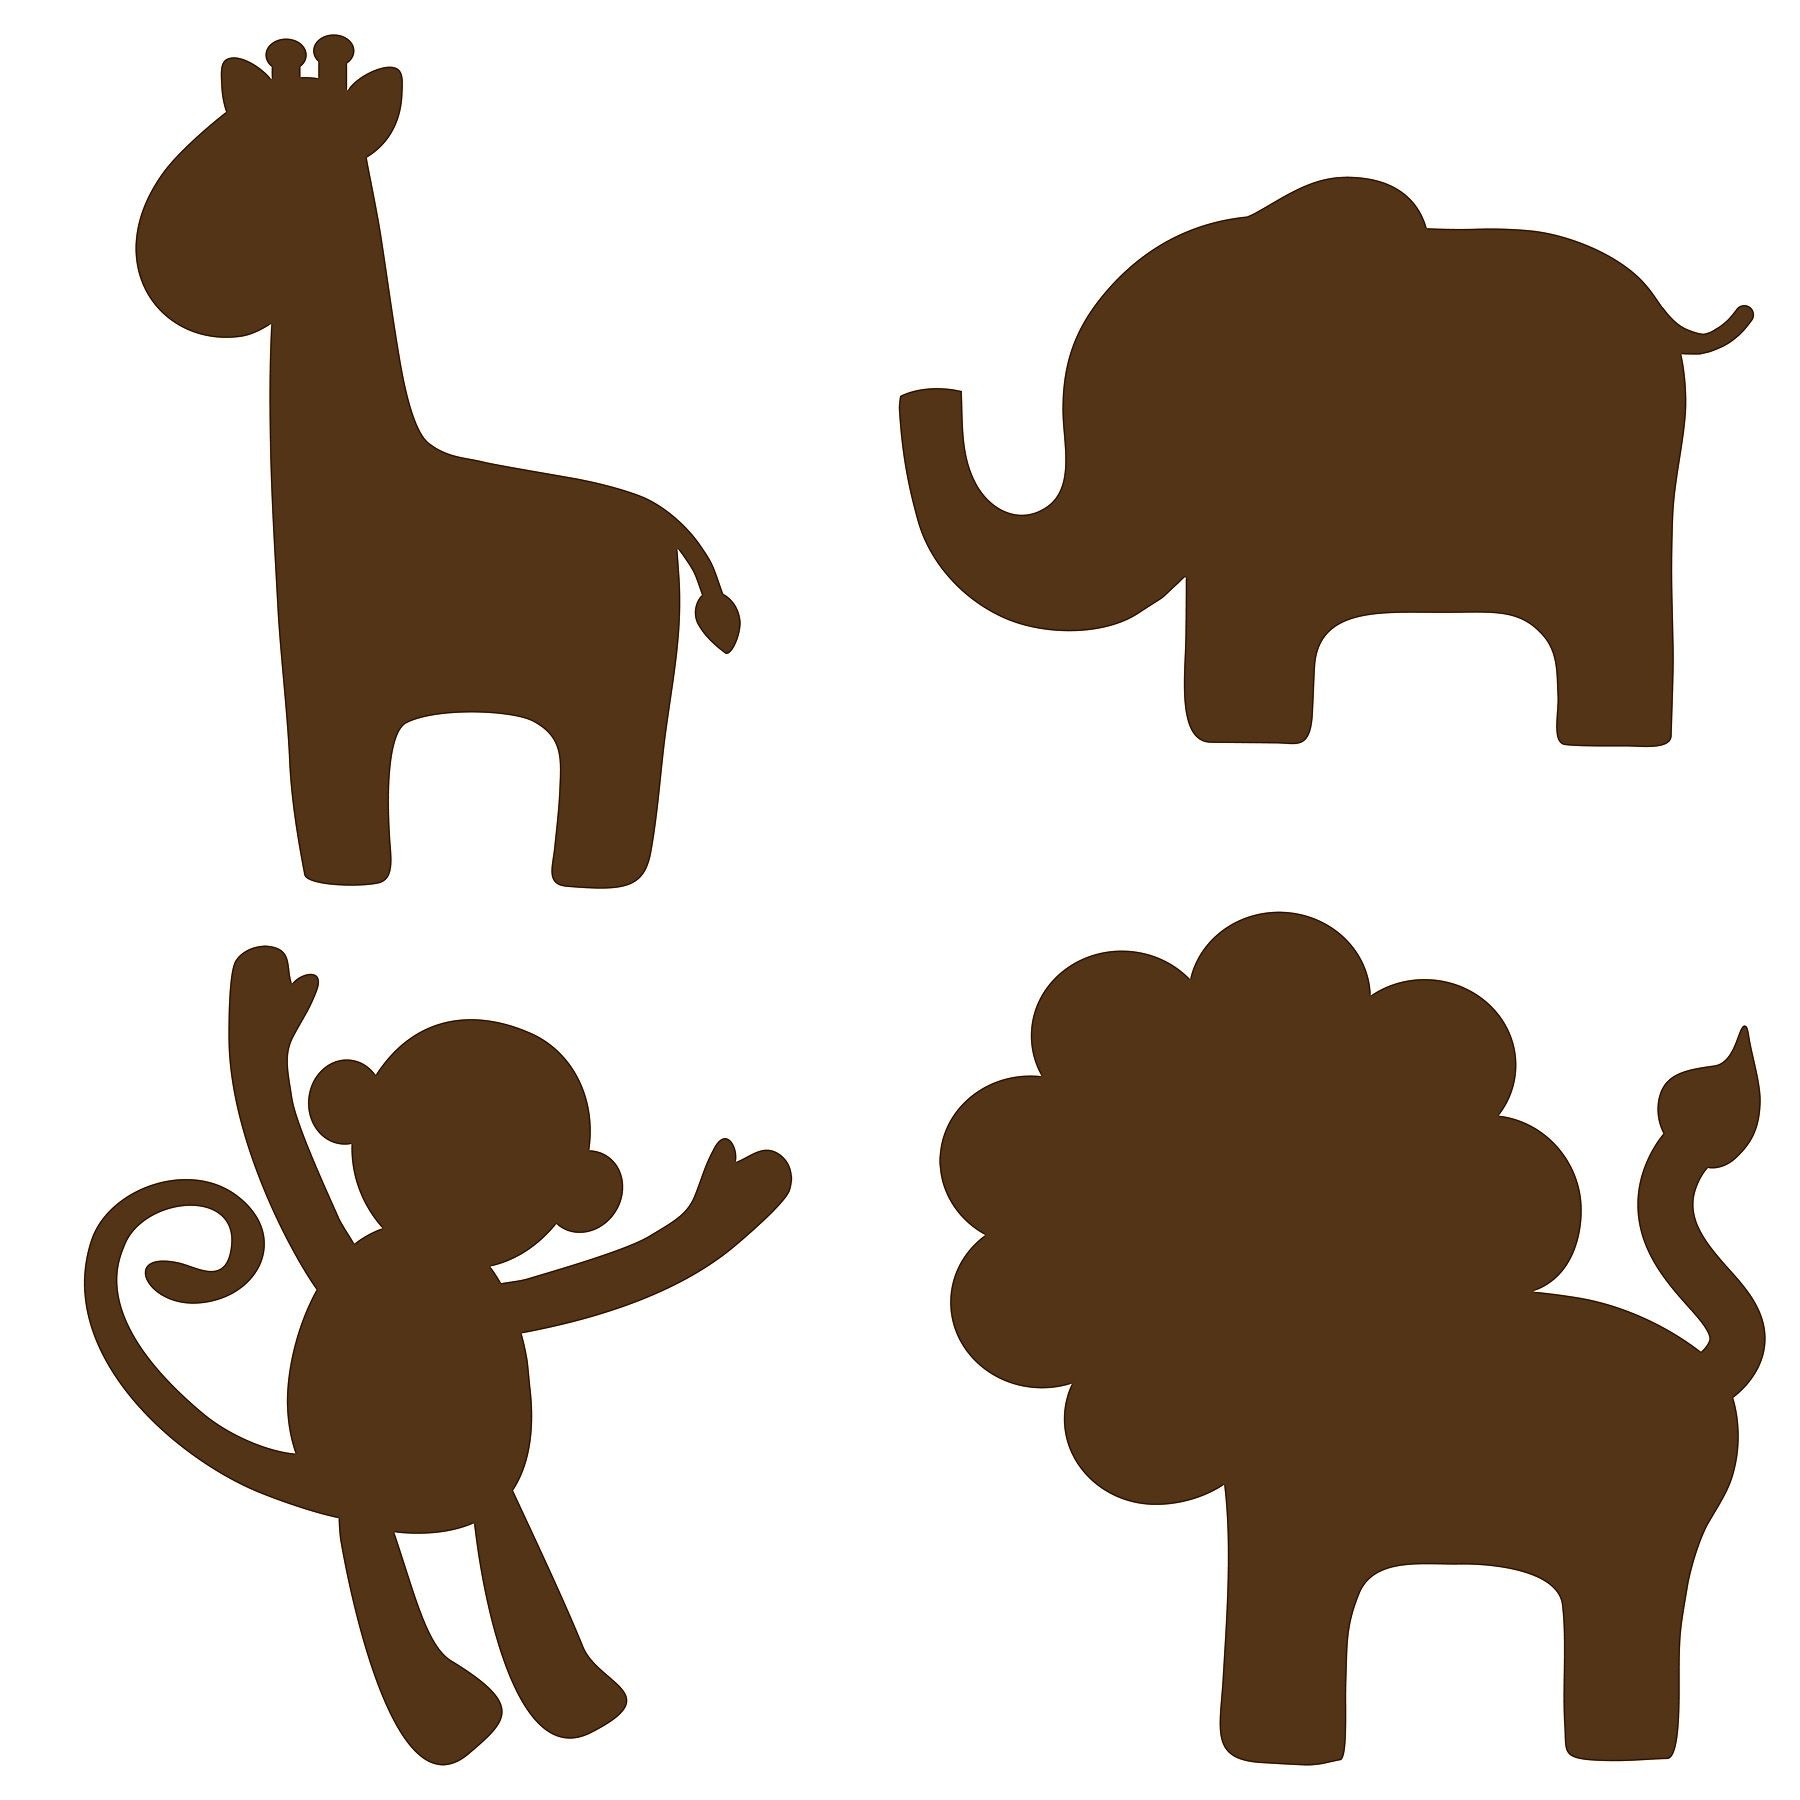 elephant clip art silhouette at getdrawings com free for personal rh getdrawings com indian elephant face clipart indian wedding elephant clipart